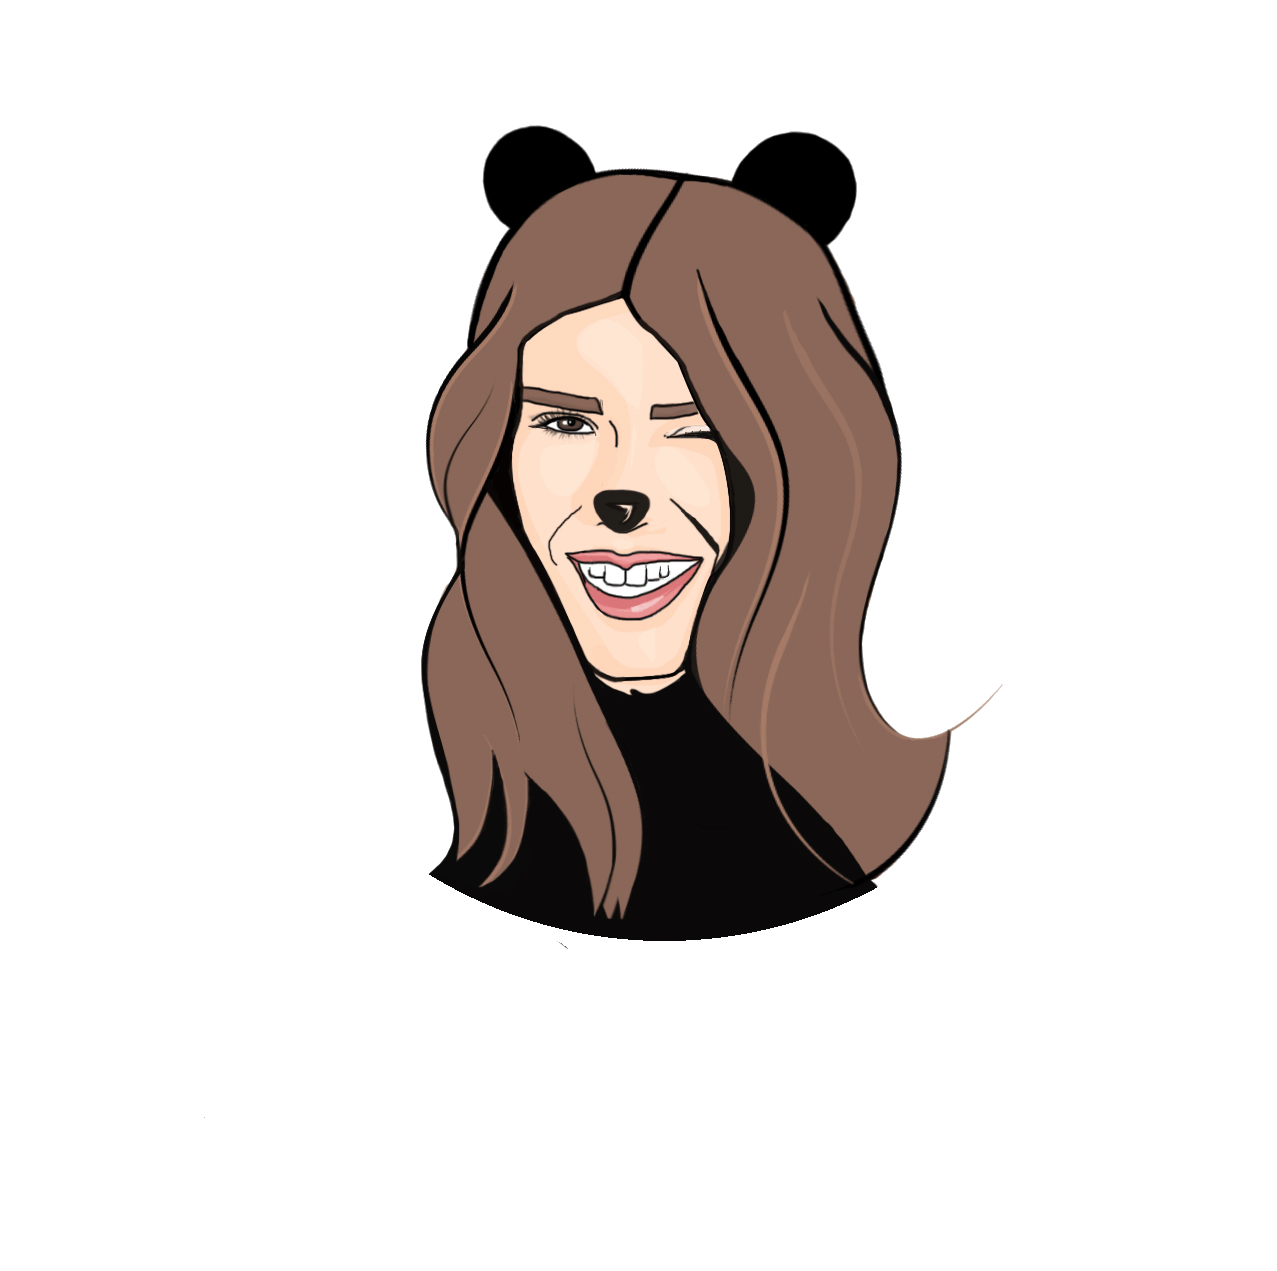 The Bear Girl